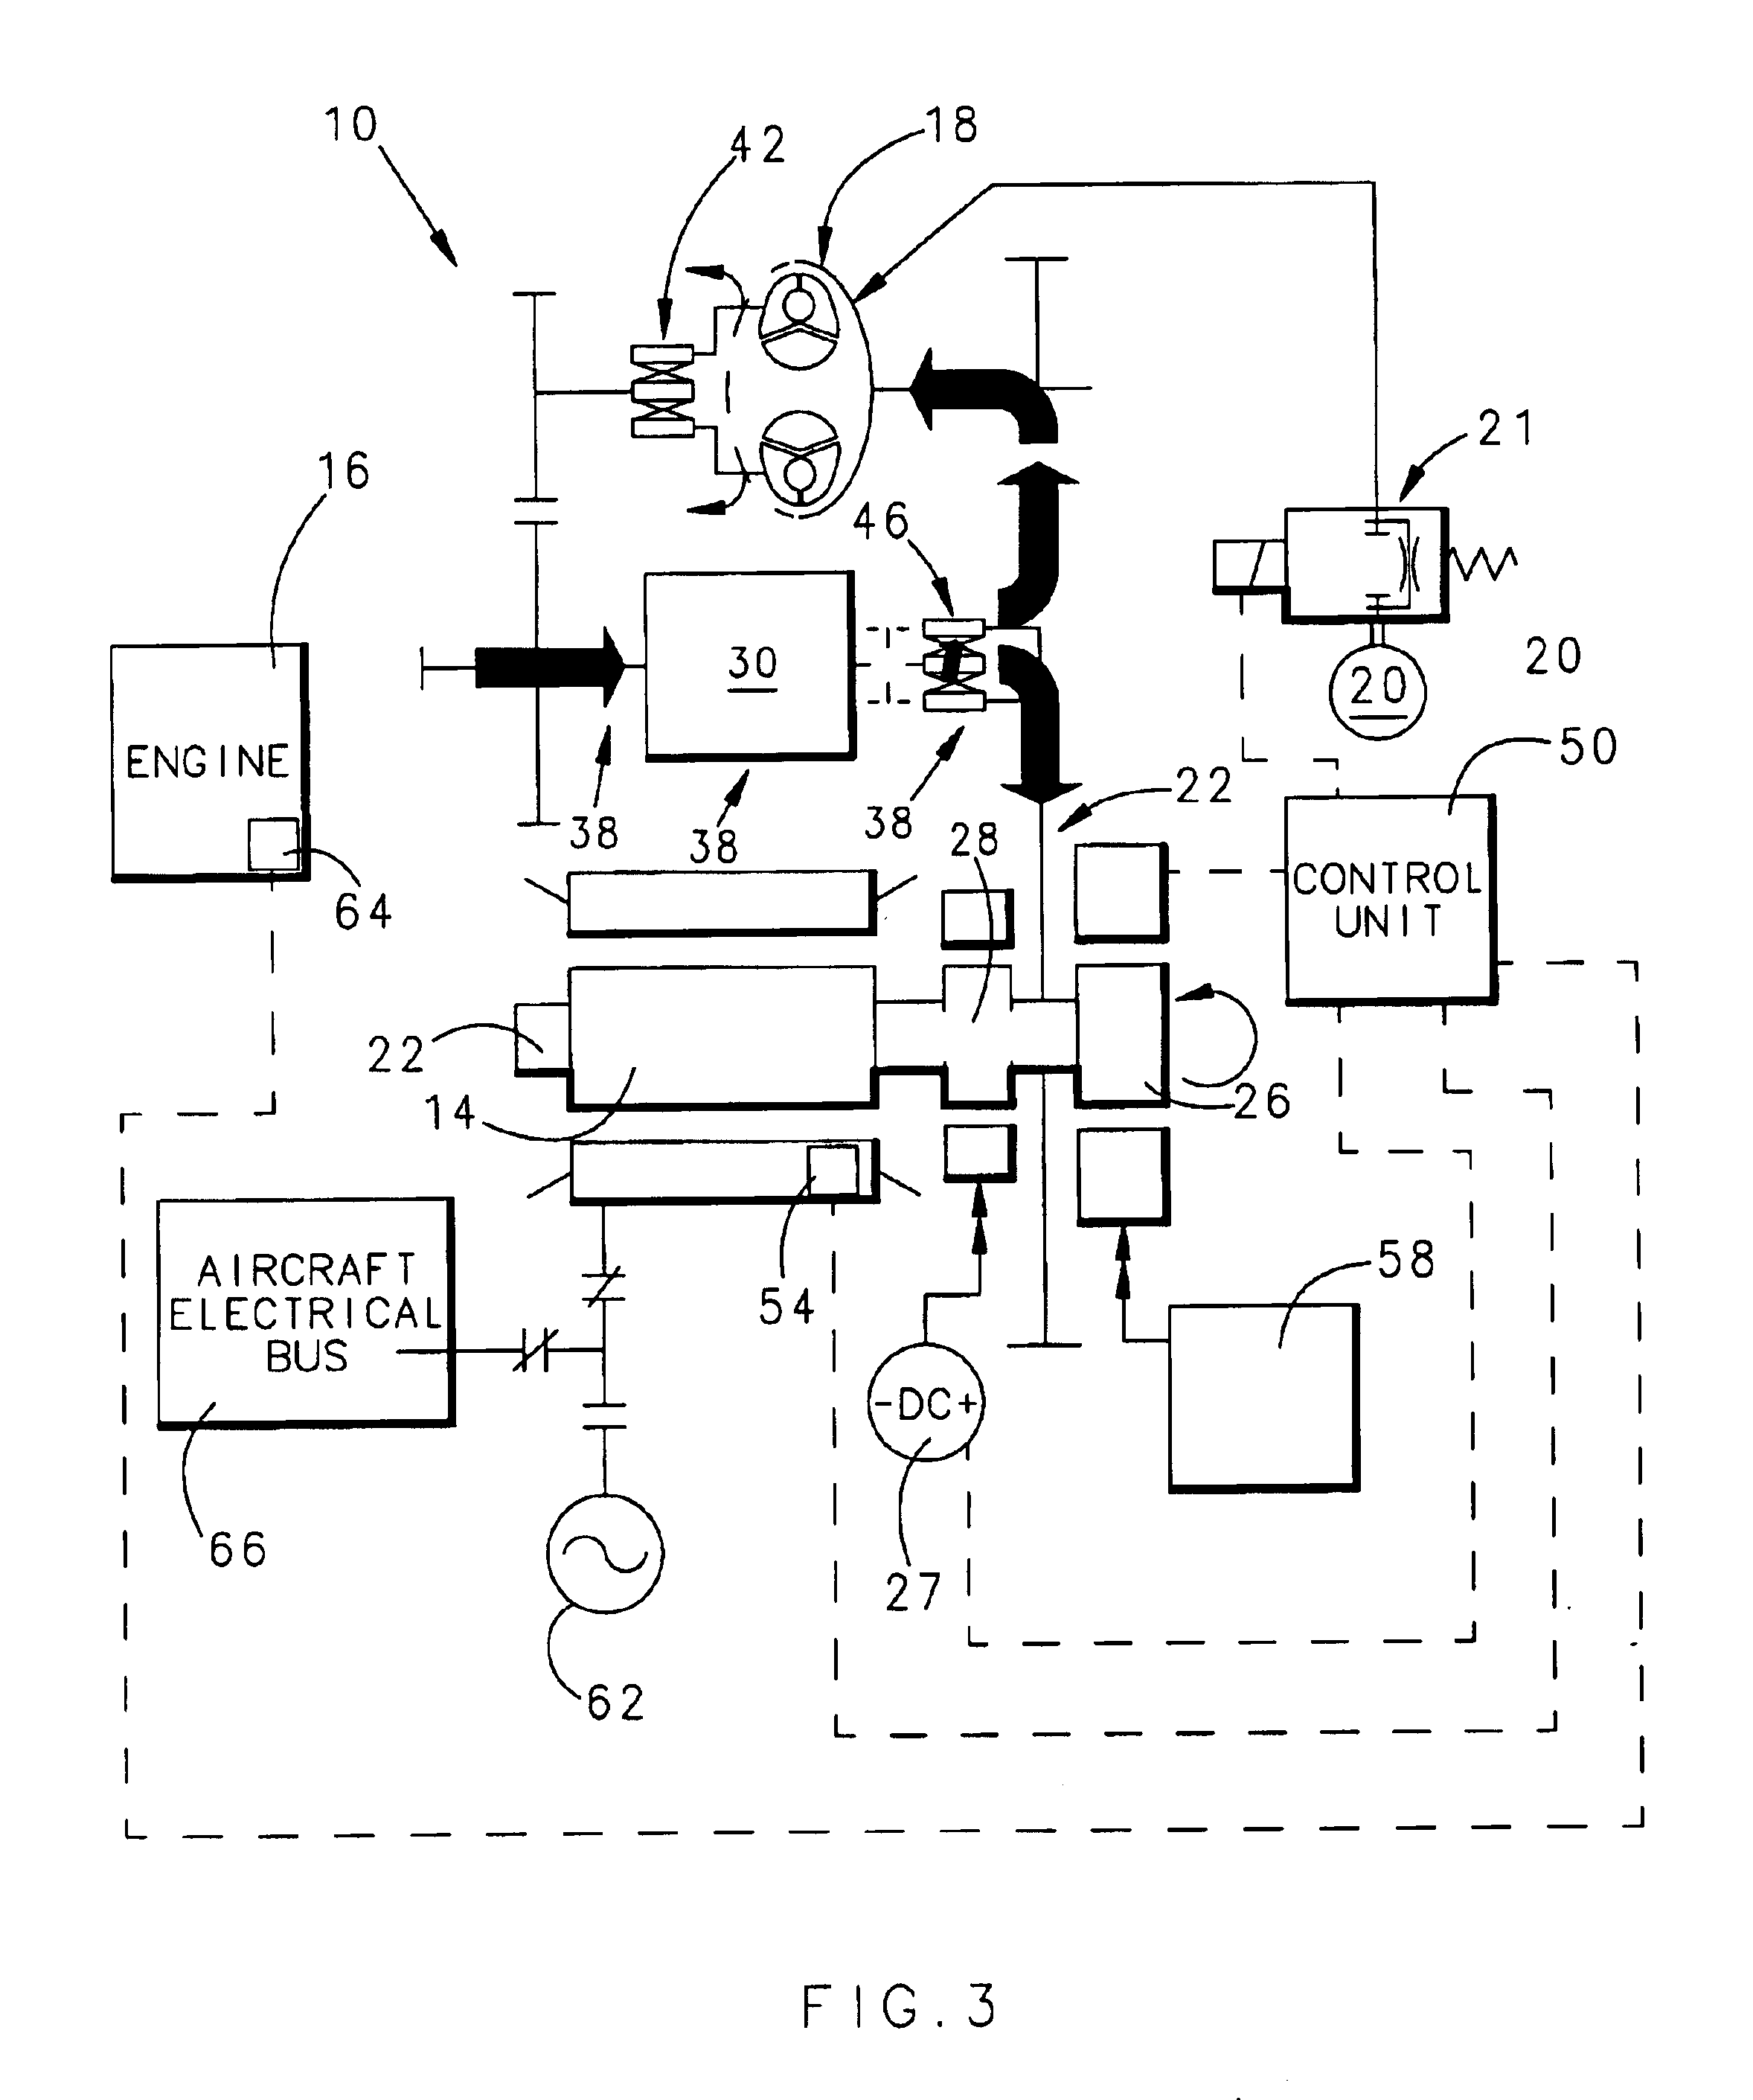 integrated starter generator wiring diagram integrated t led tube ftpatent us integrated starter generator drive having patent drawing